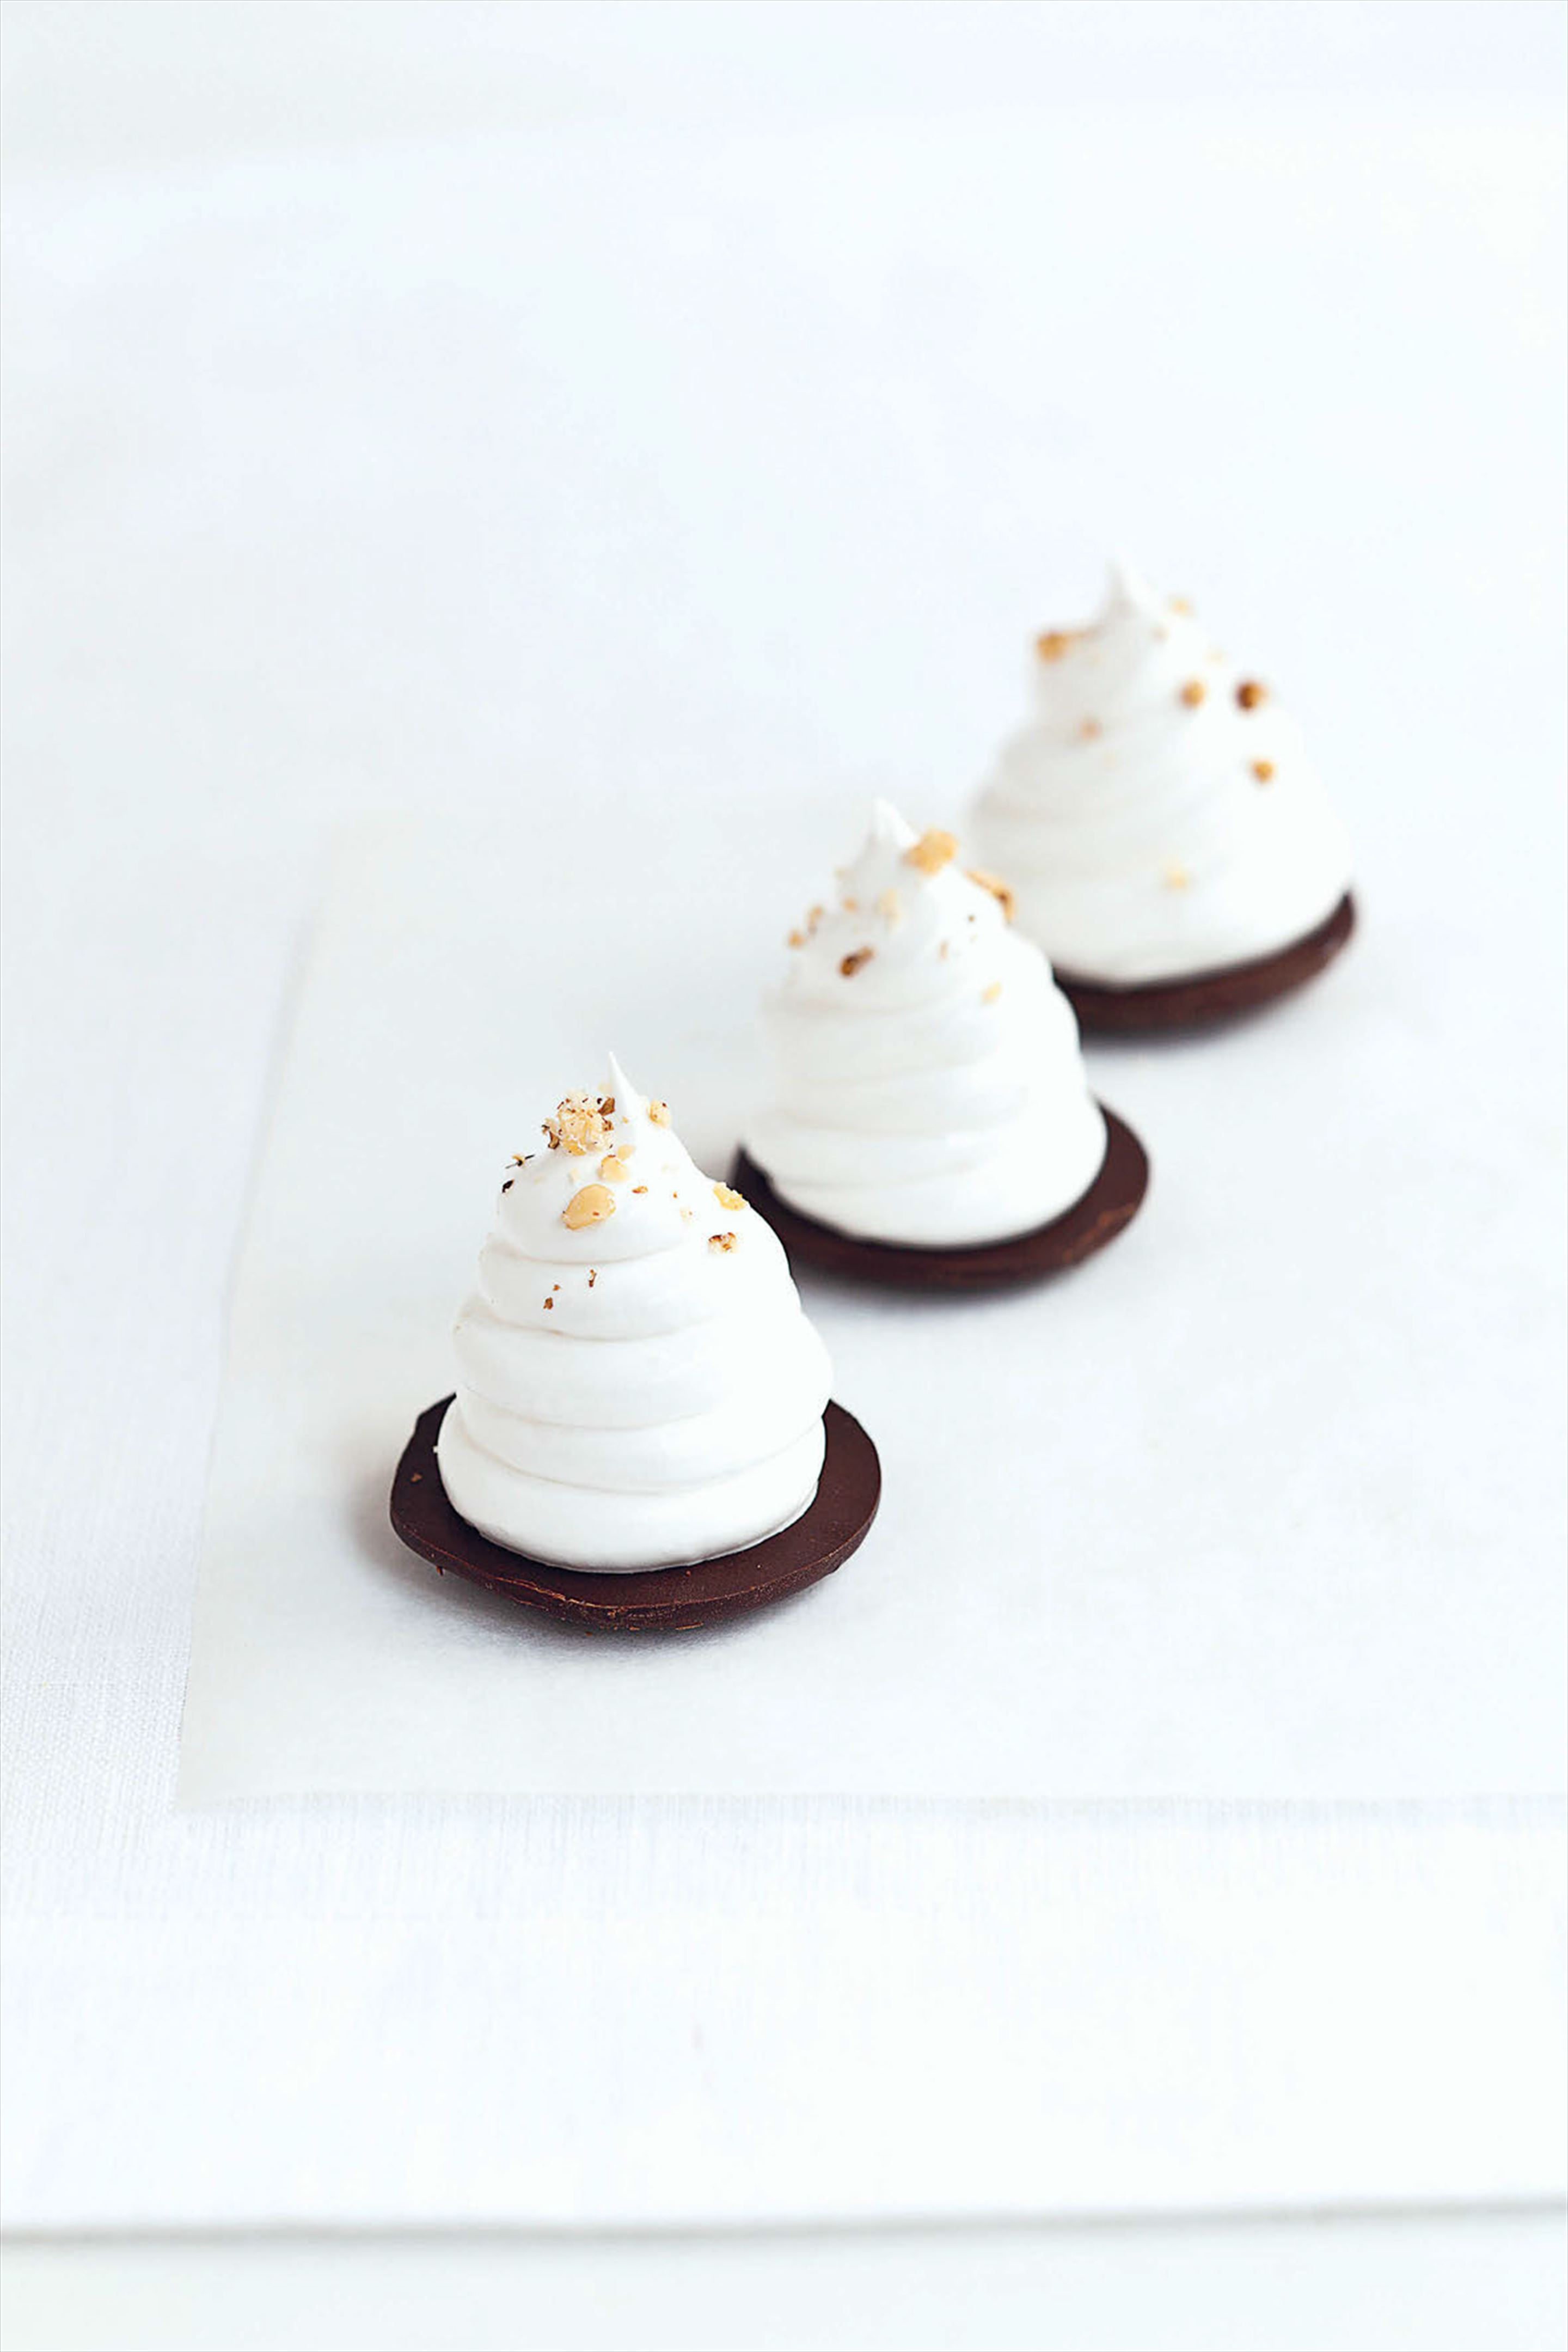 Walnut whip: Italian meringue and chocolate